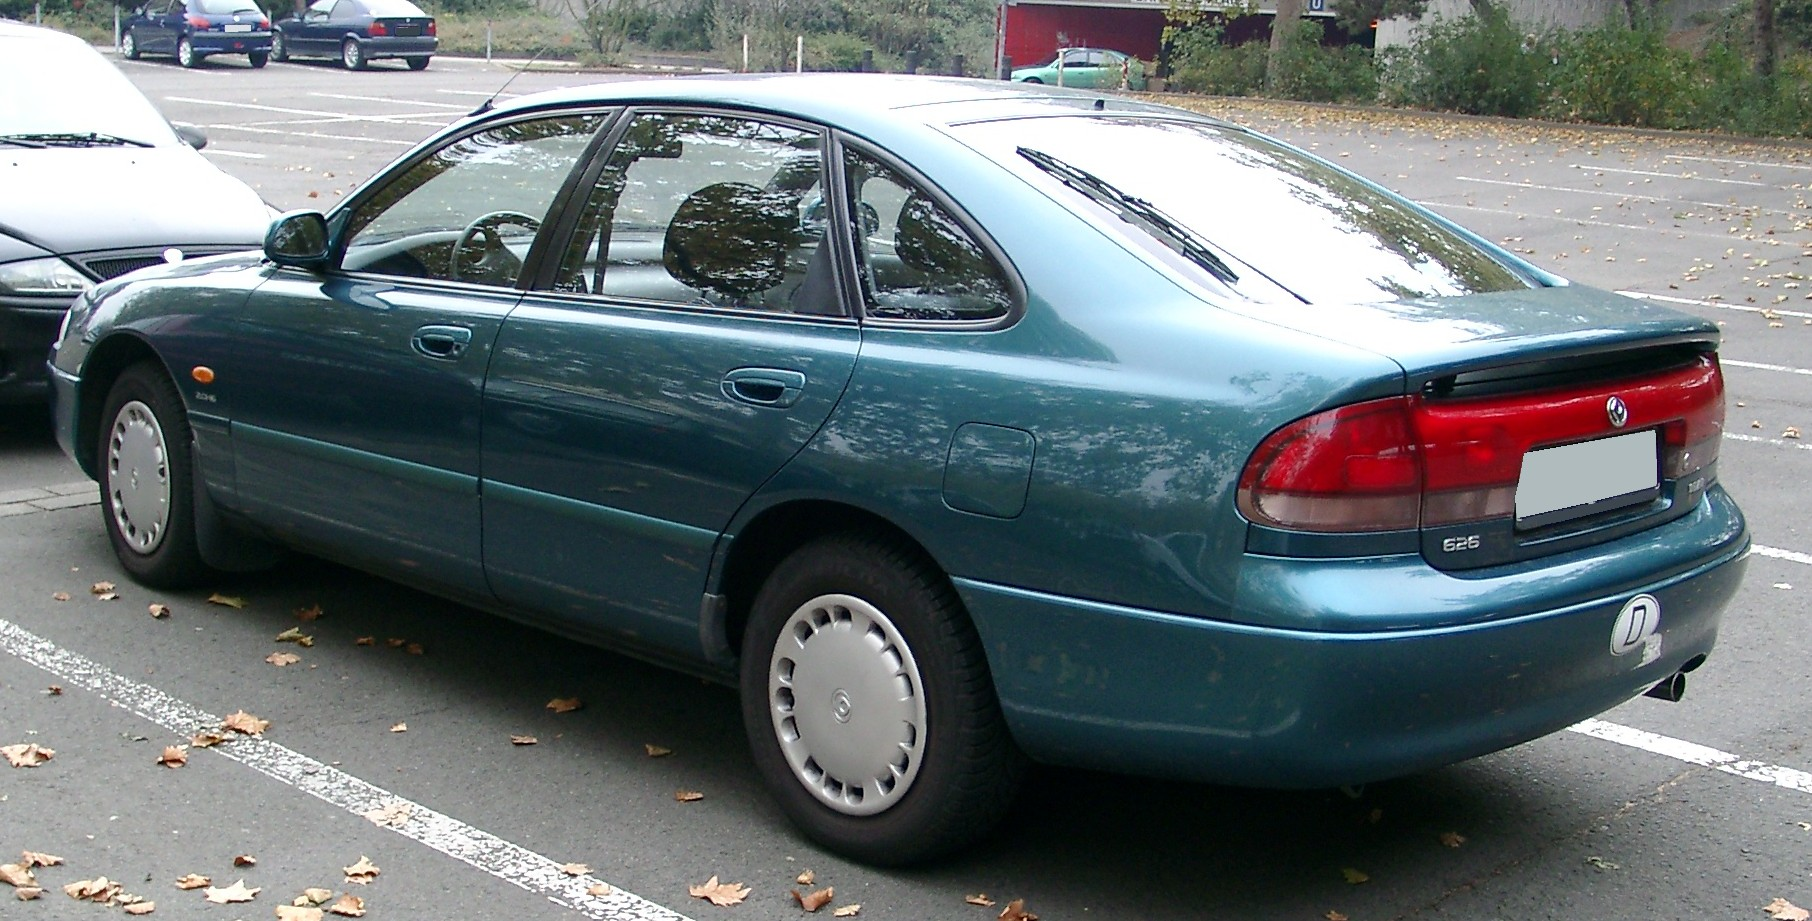 1993 Mazda 626 iv station wagon – pictures, information and specs